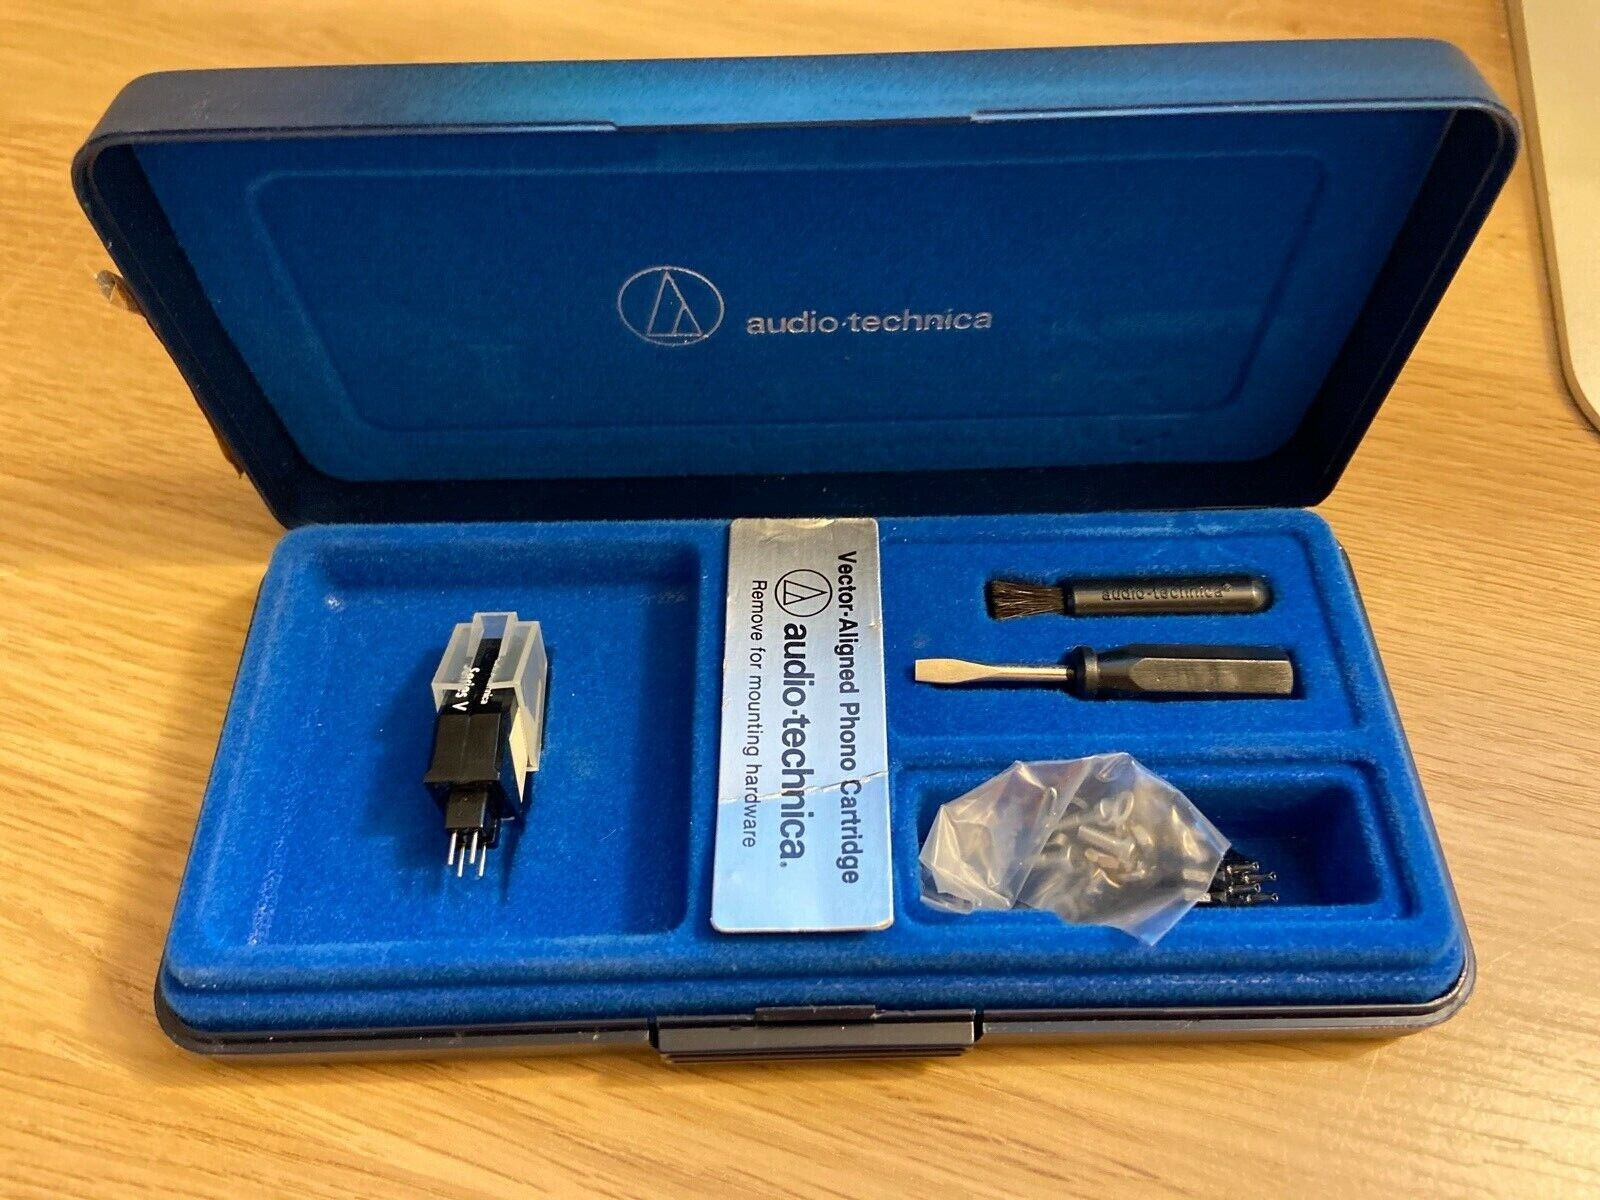 AUDIO-TECHNICA Stereo Phono Series V SYlus Needle For Record